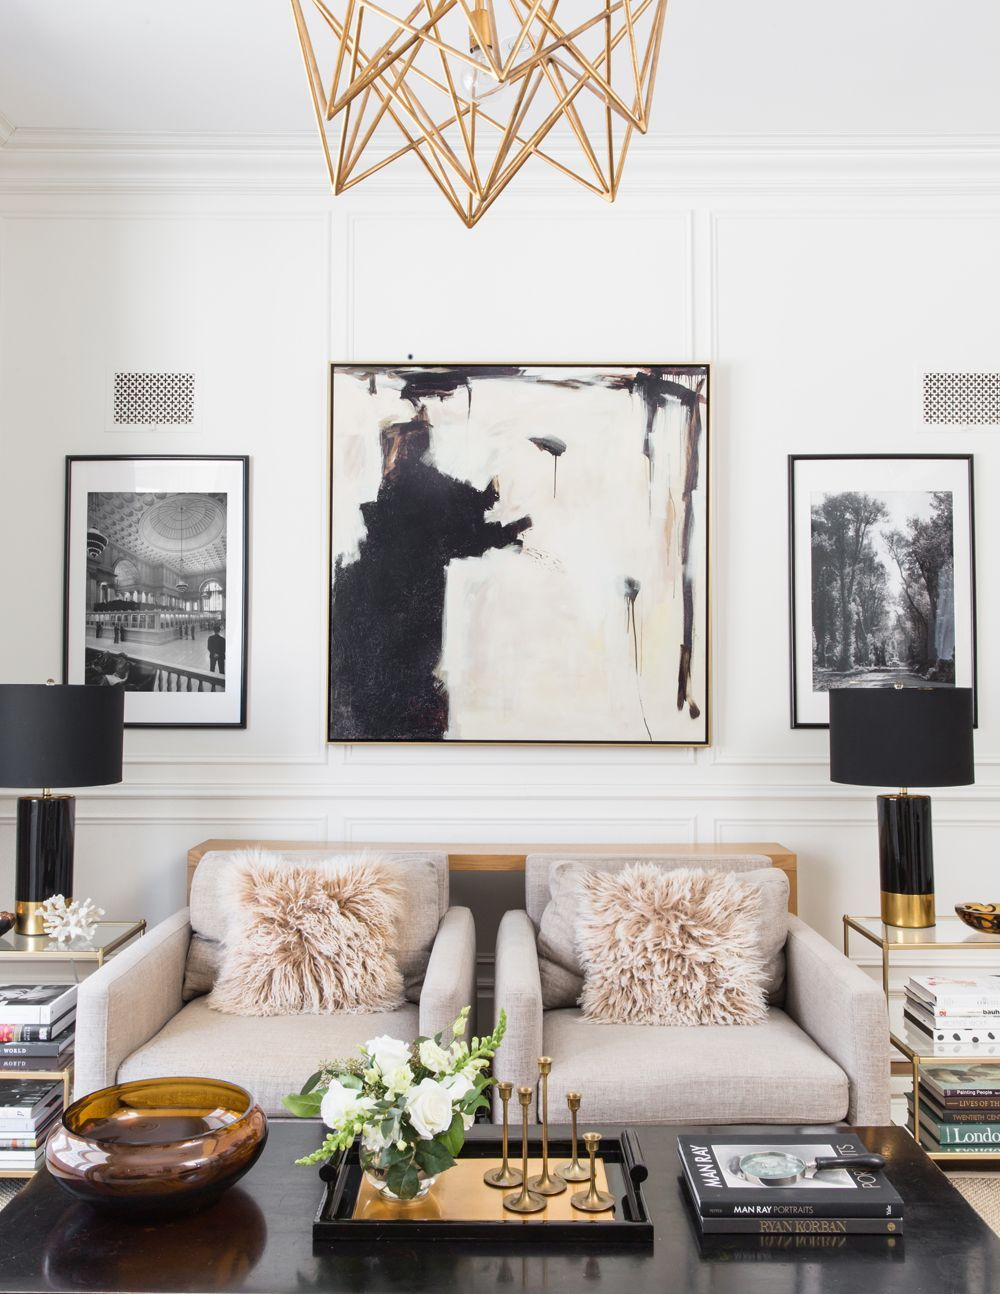 How To Get A Luxury Living Room Pt 1 Golden Lighting: This Designer's Parisian-Inspired Family Home Will Make You Swoon